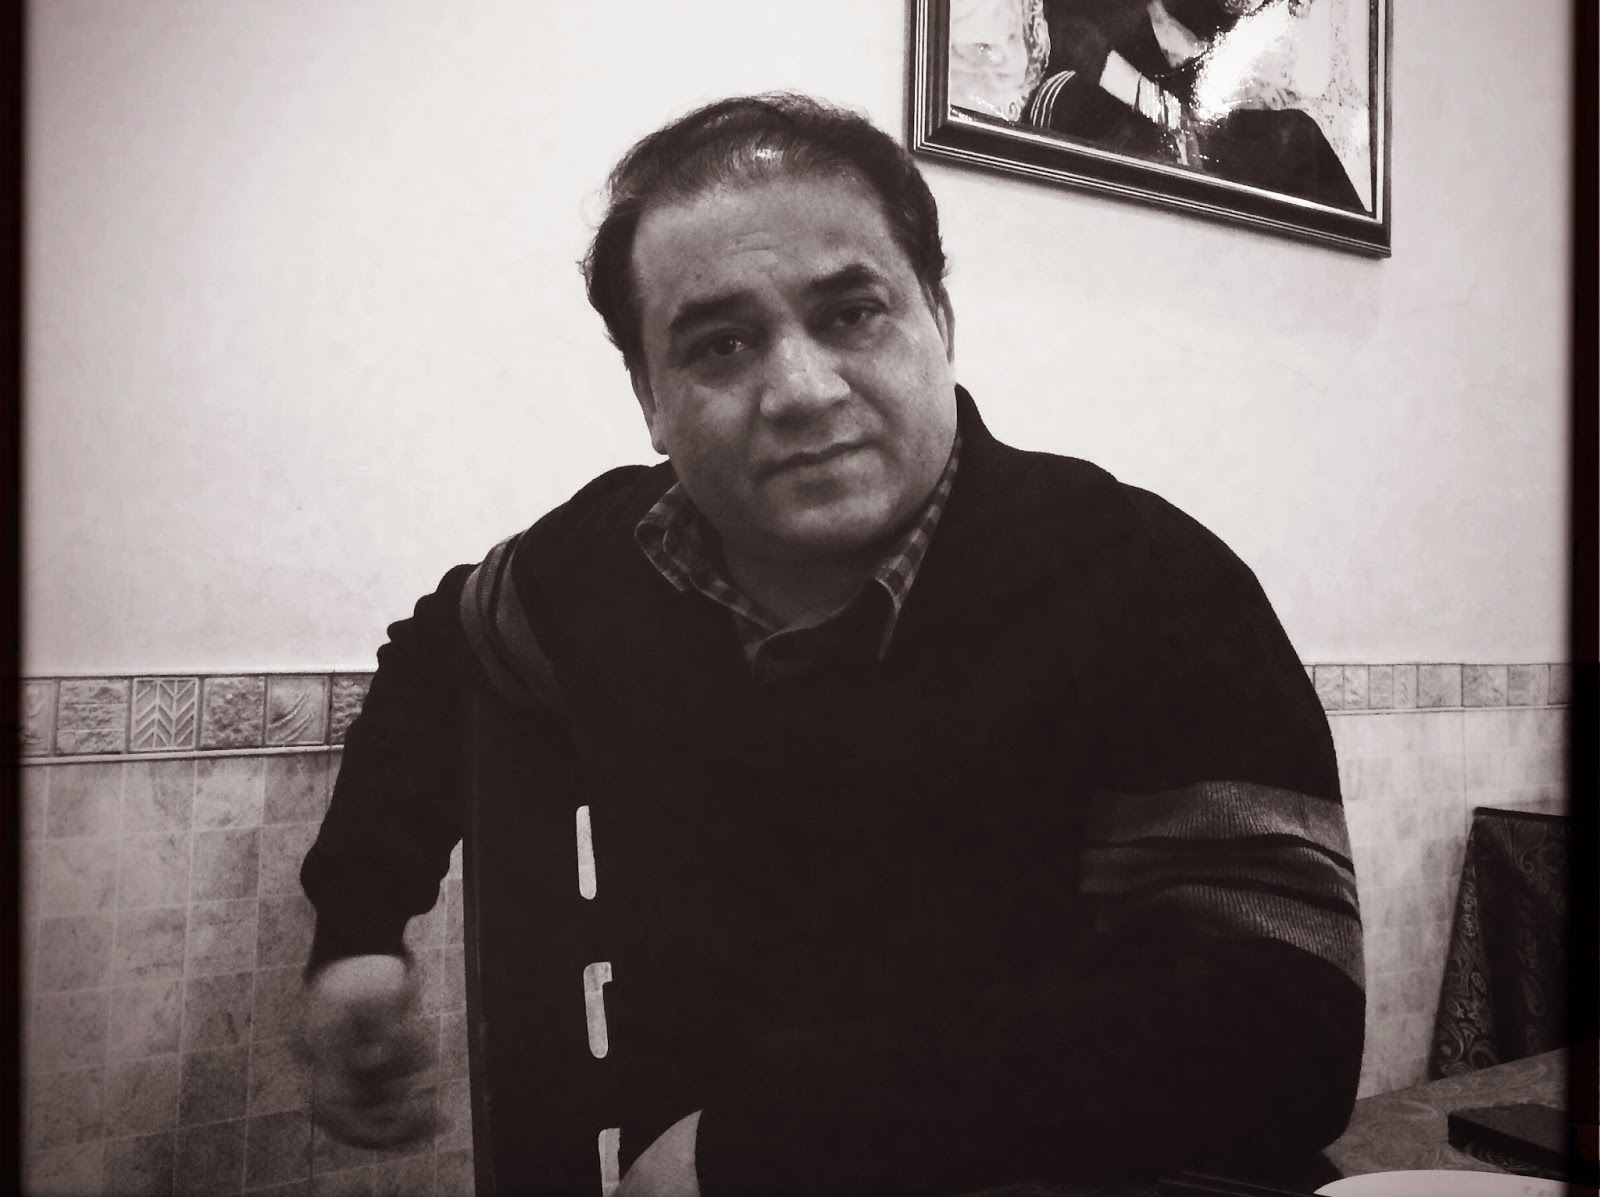 Ilham Tohti Was Sentenced To Life In Prison On Separatism Charges September 23 2014